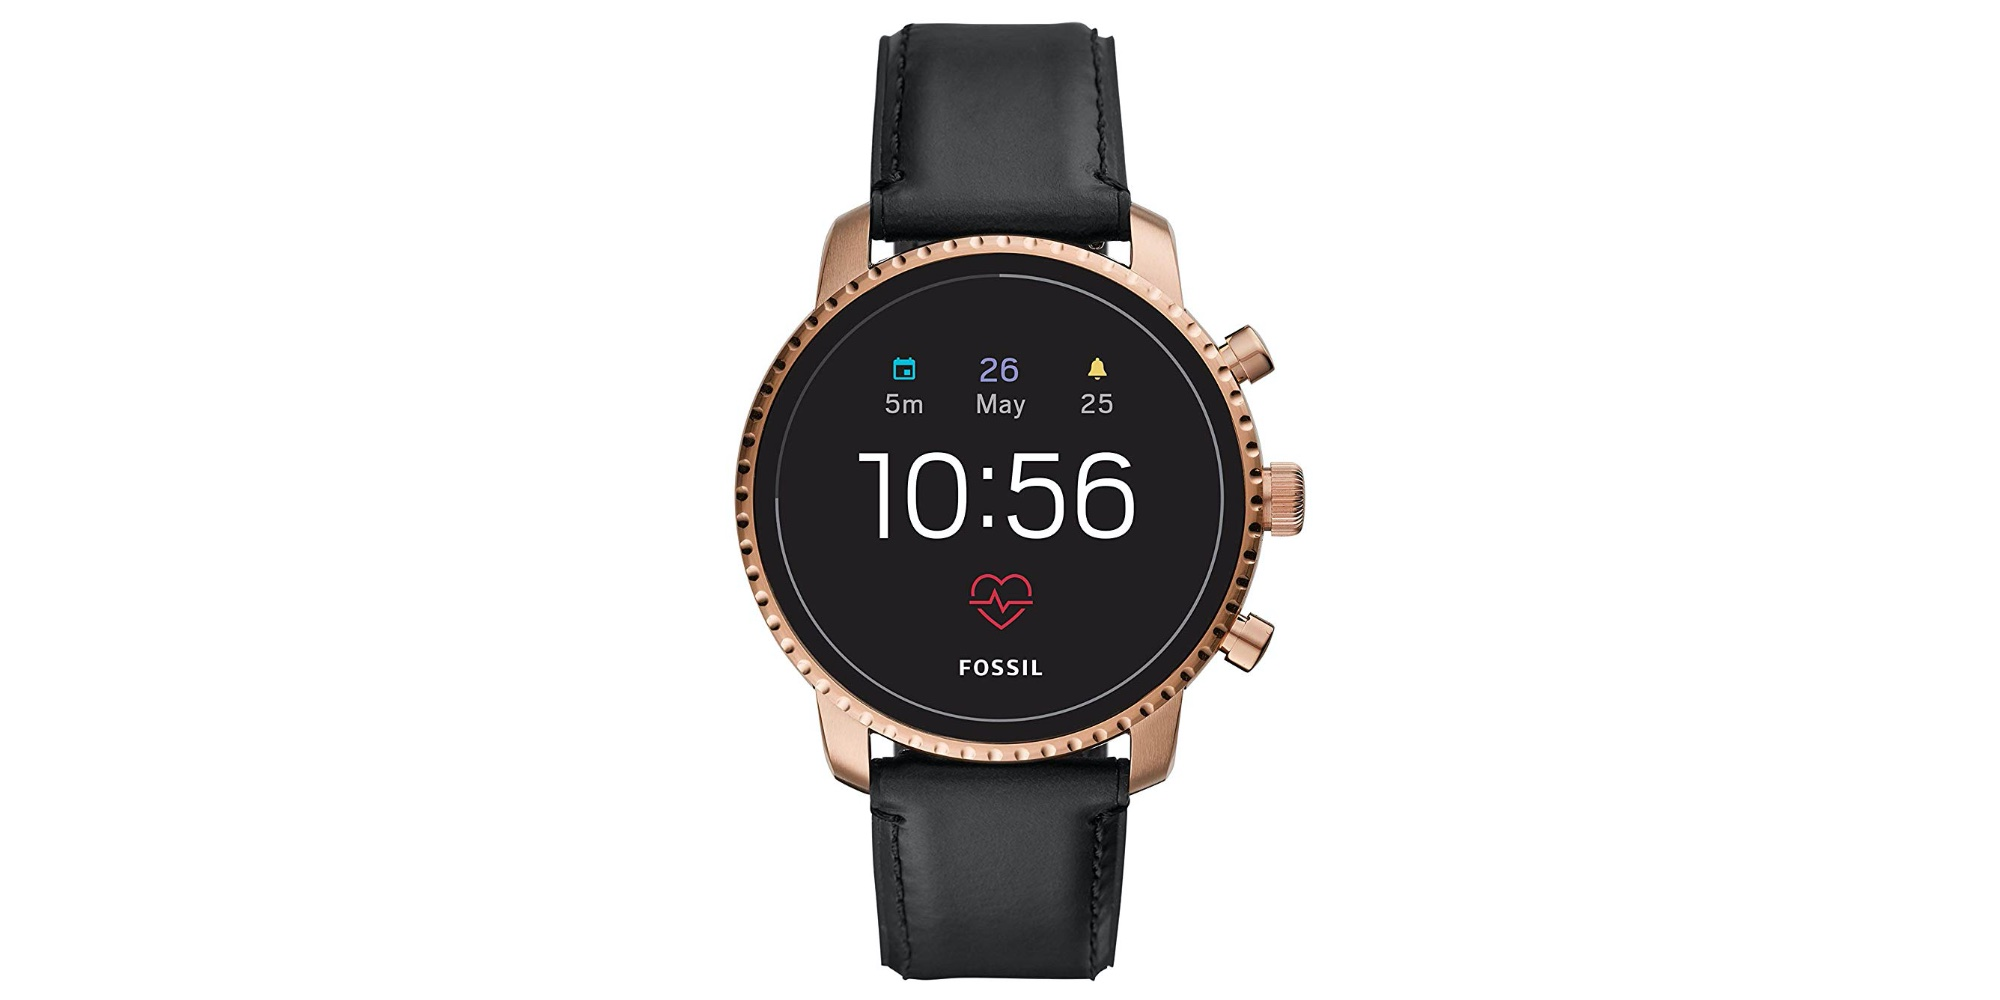 Fossil's Explorist HR Smartwatch with leather or steel bands: $149 (Reg. $199)